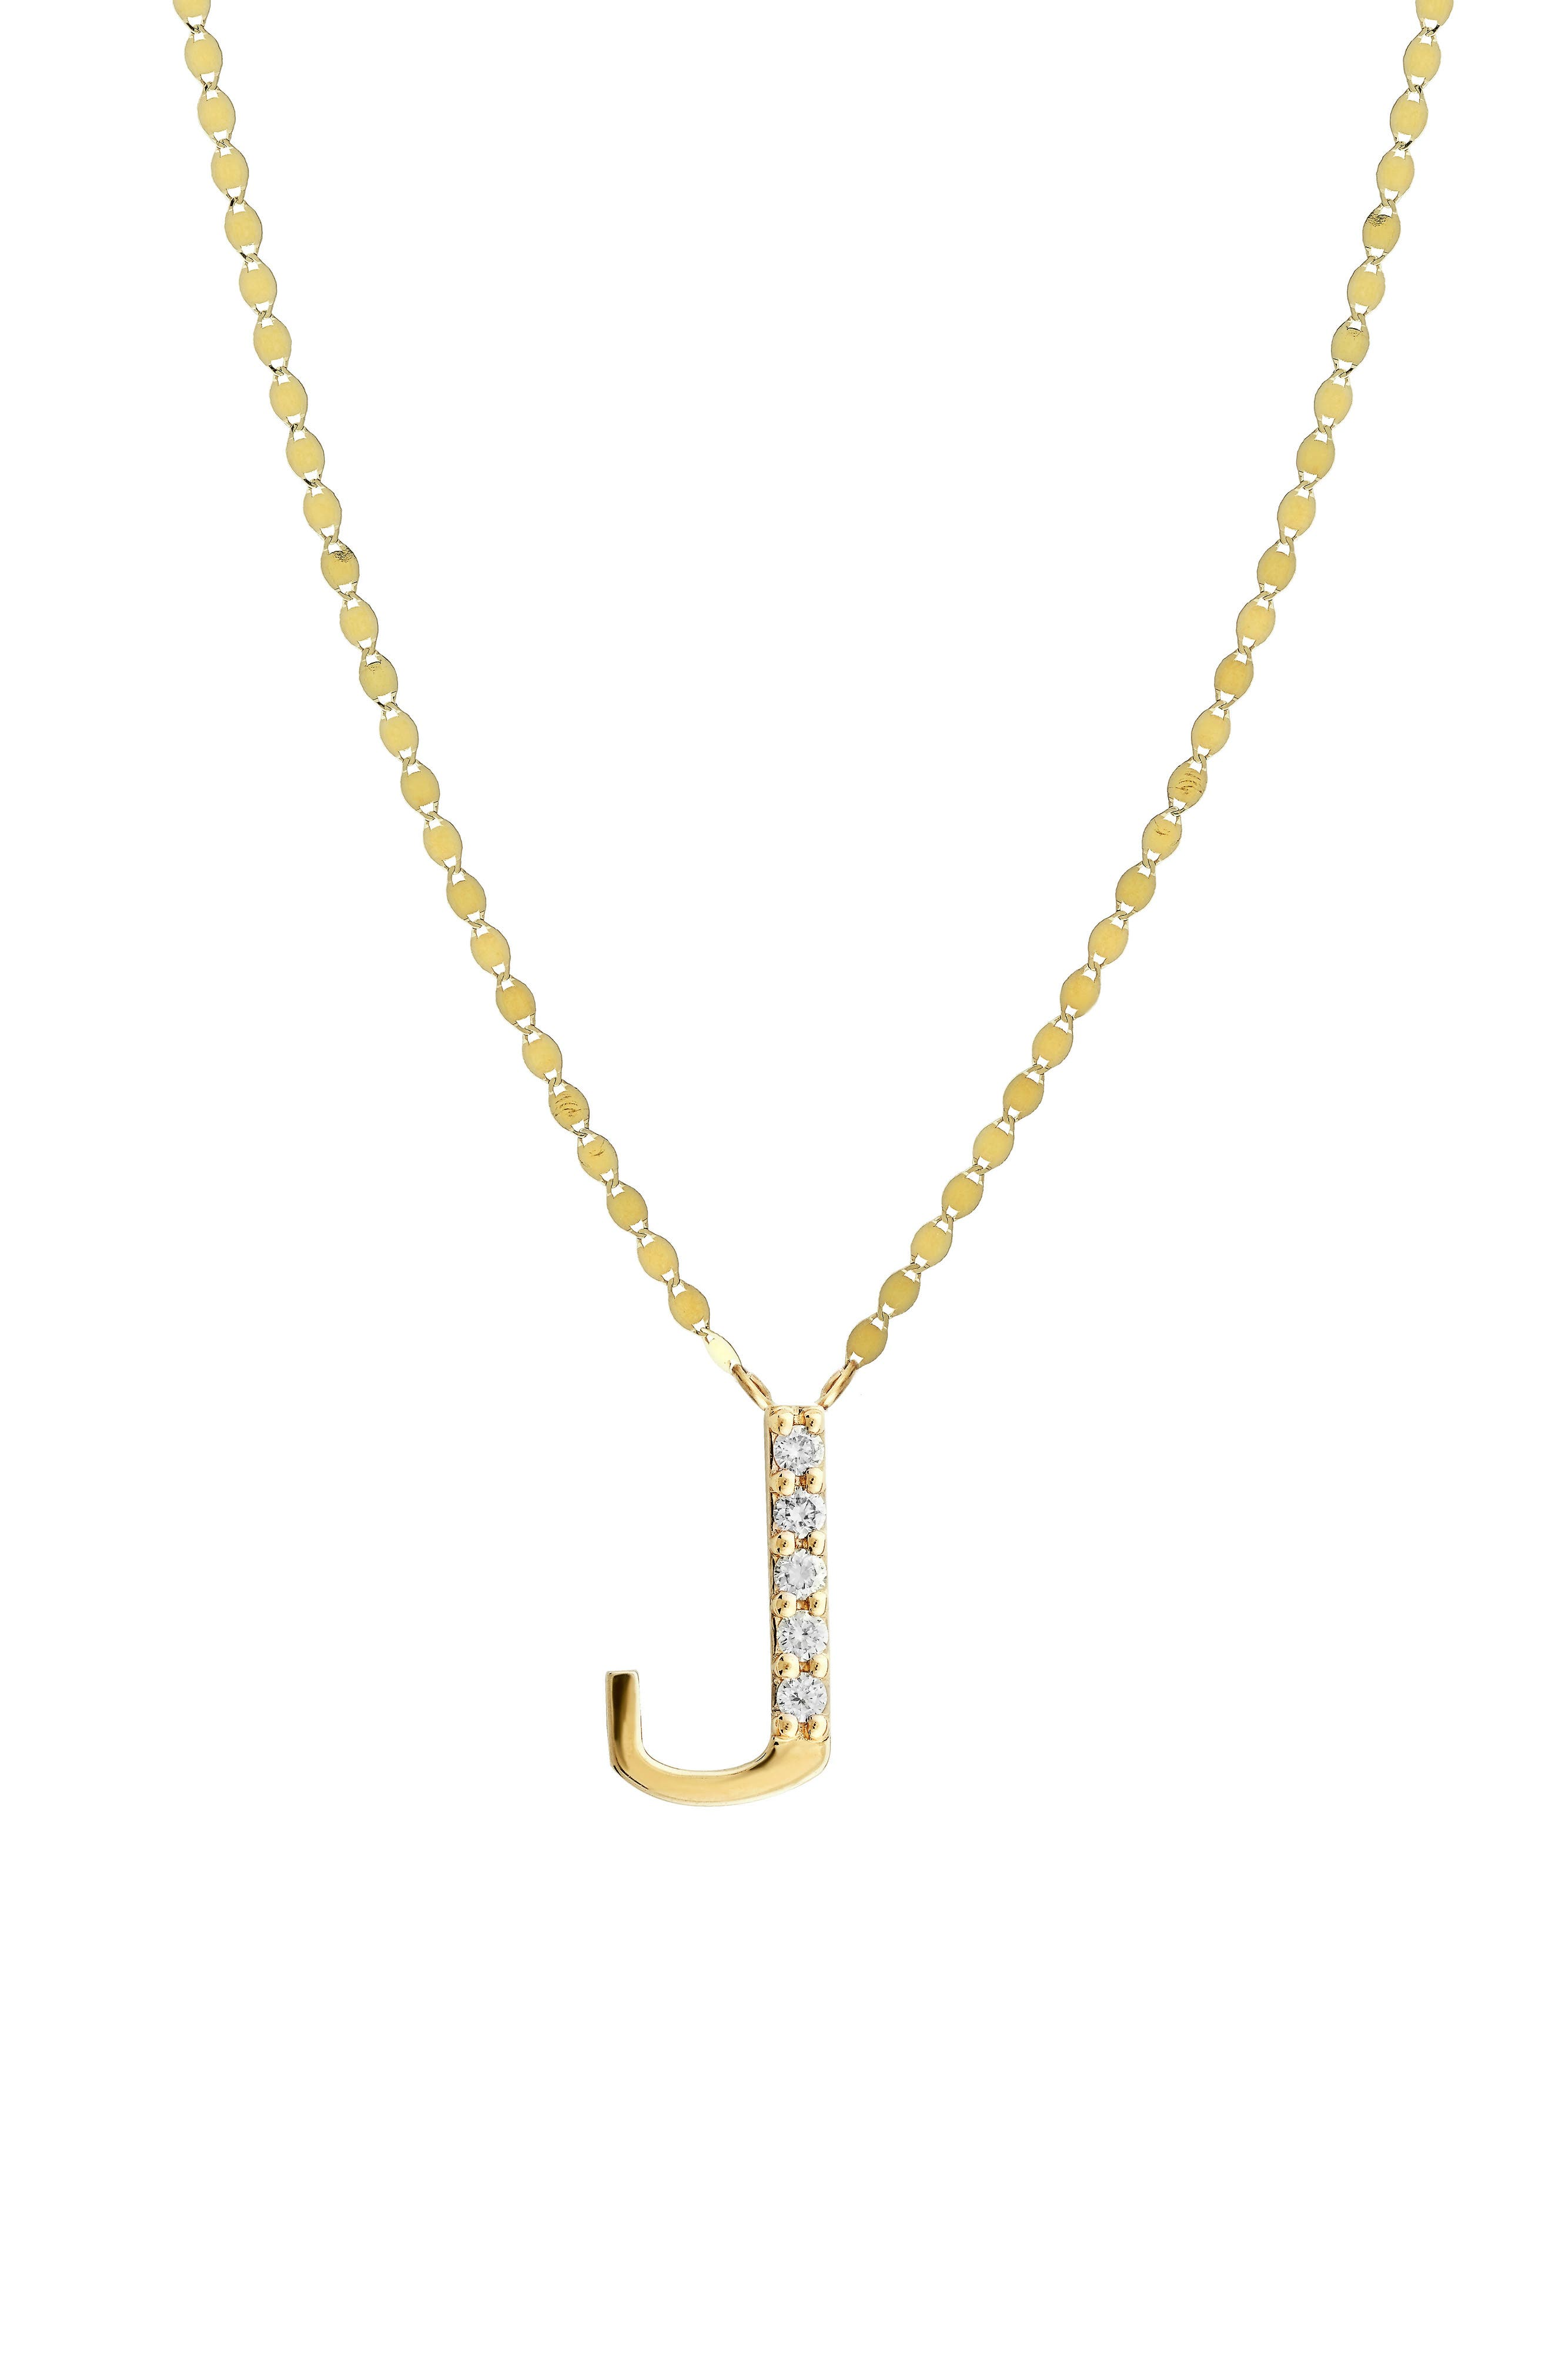 Initial Pendant Necklace,                             Main thumbnail 1, color,                             Yellow Gold- J